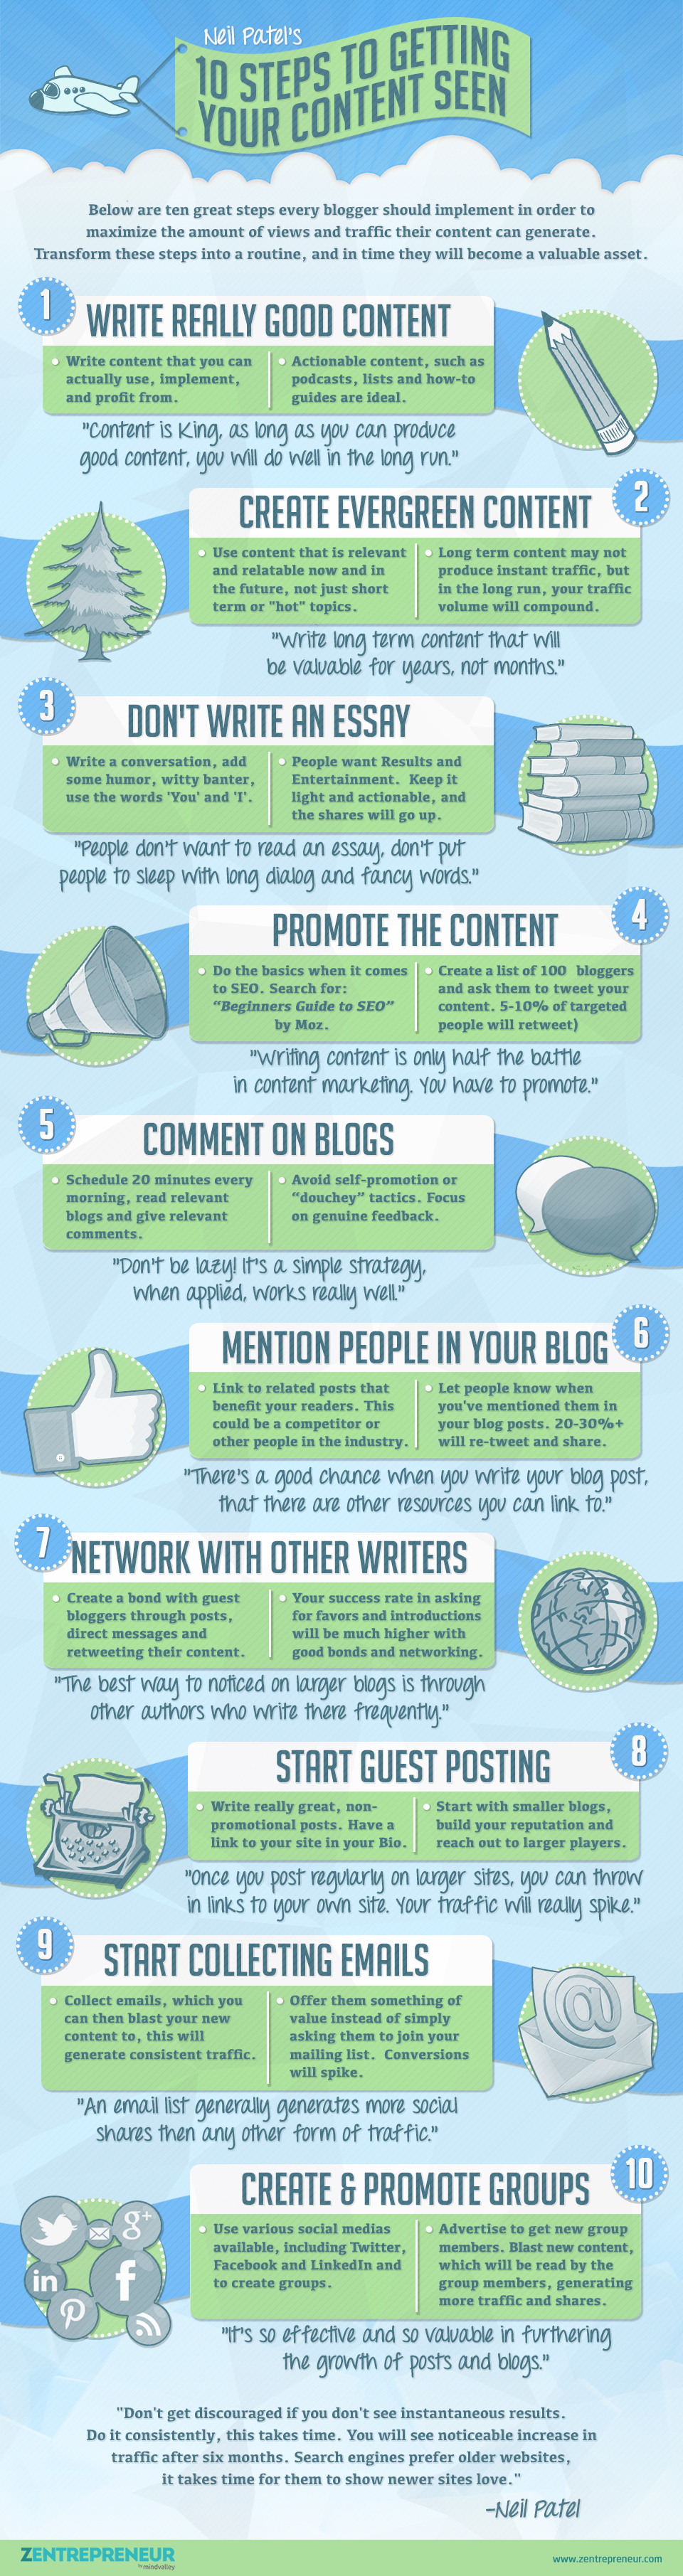 10 steps to getting your content seen - infographic